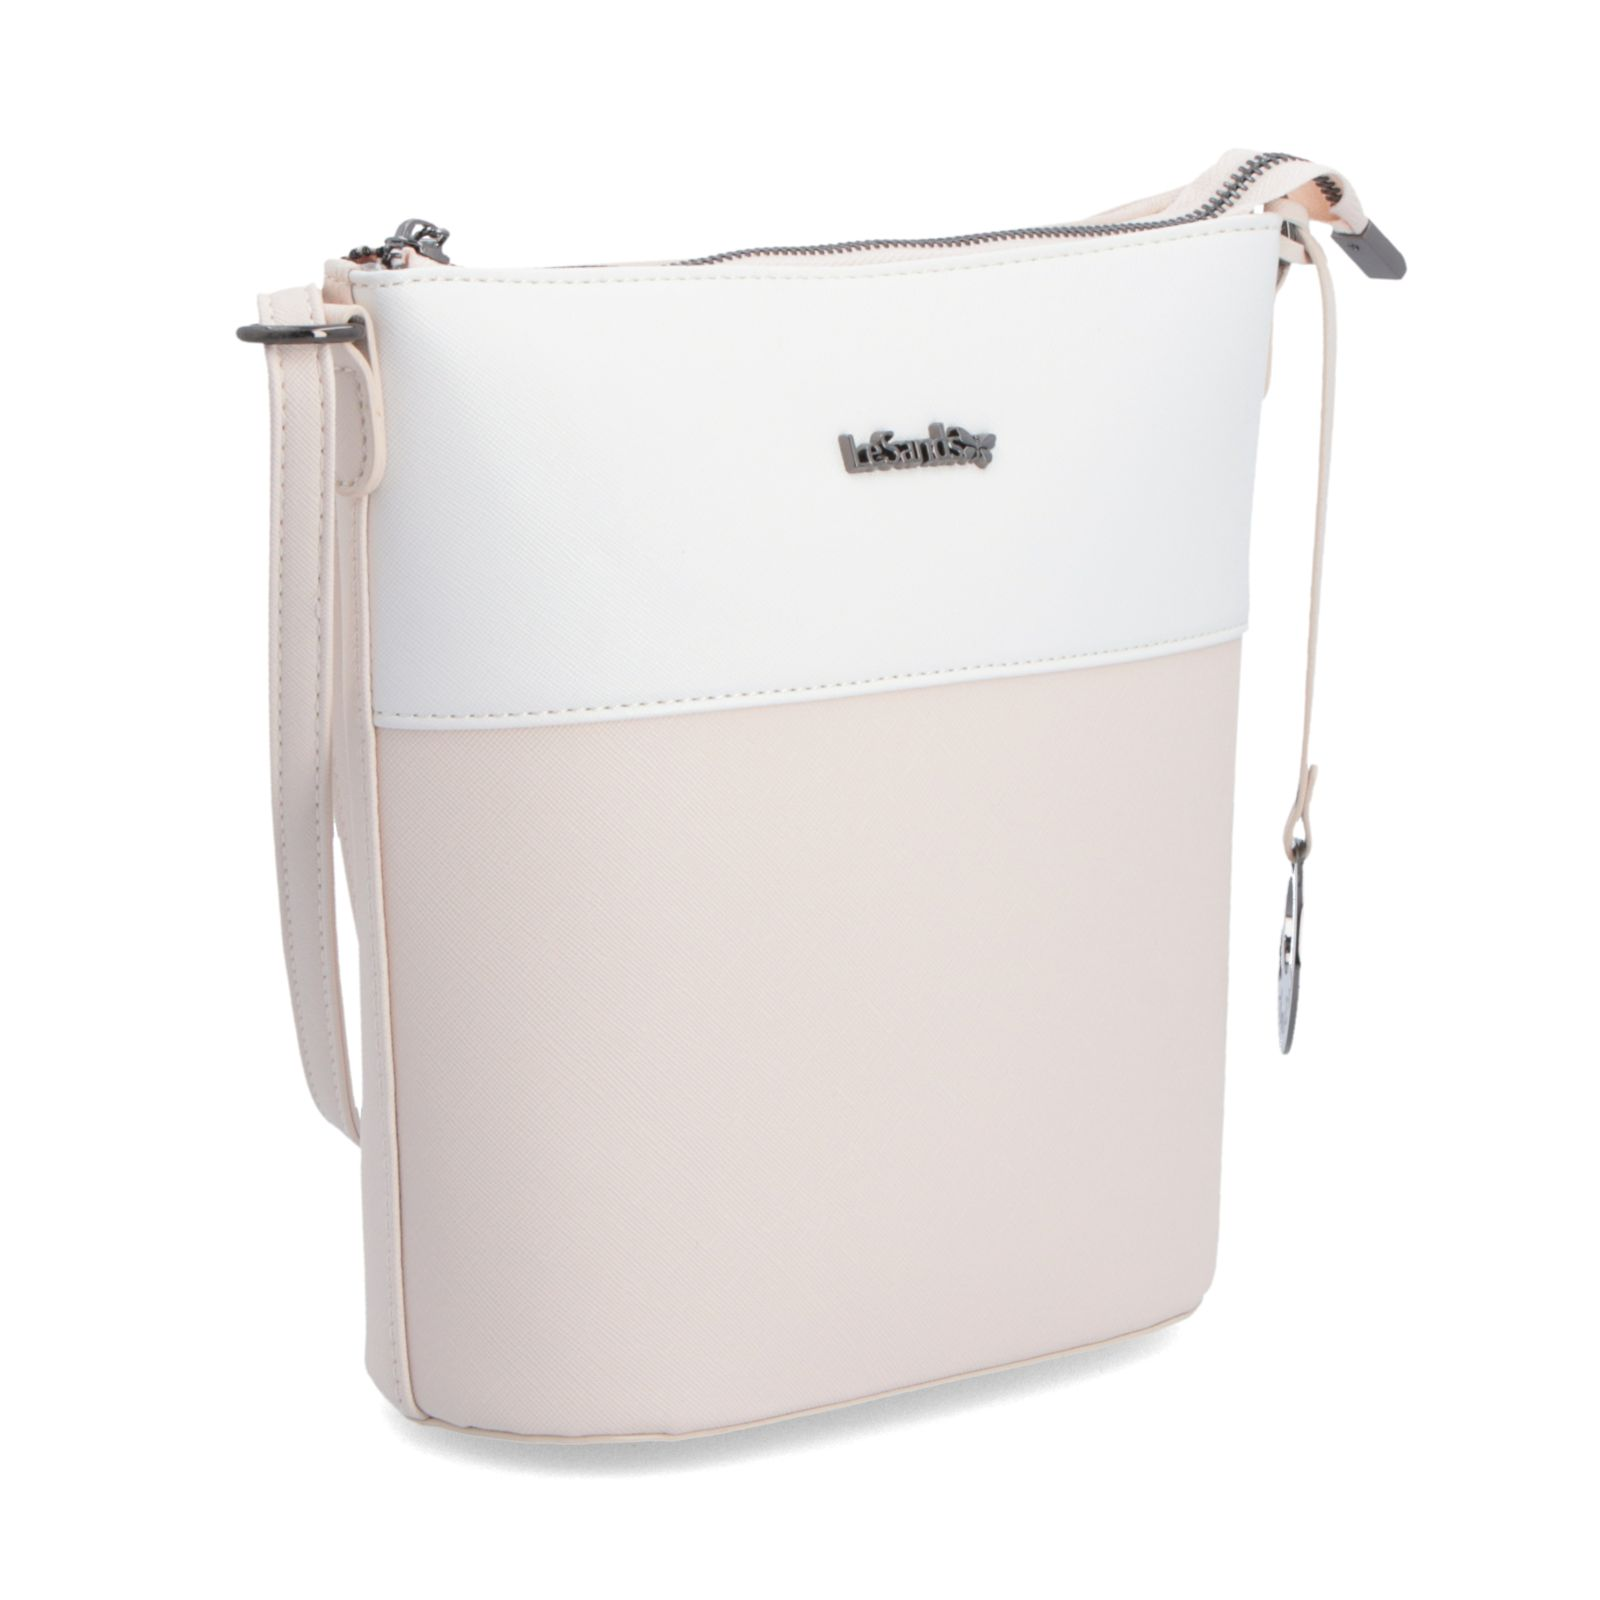 Crossbody kabelka Le Sands – 3761 BE/B